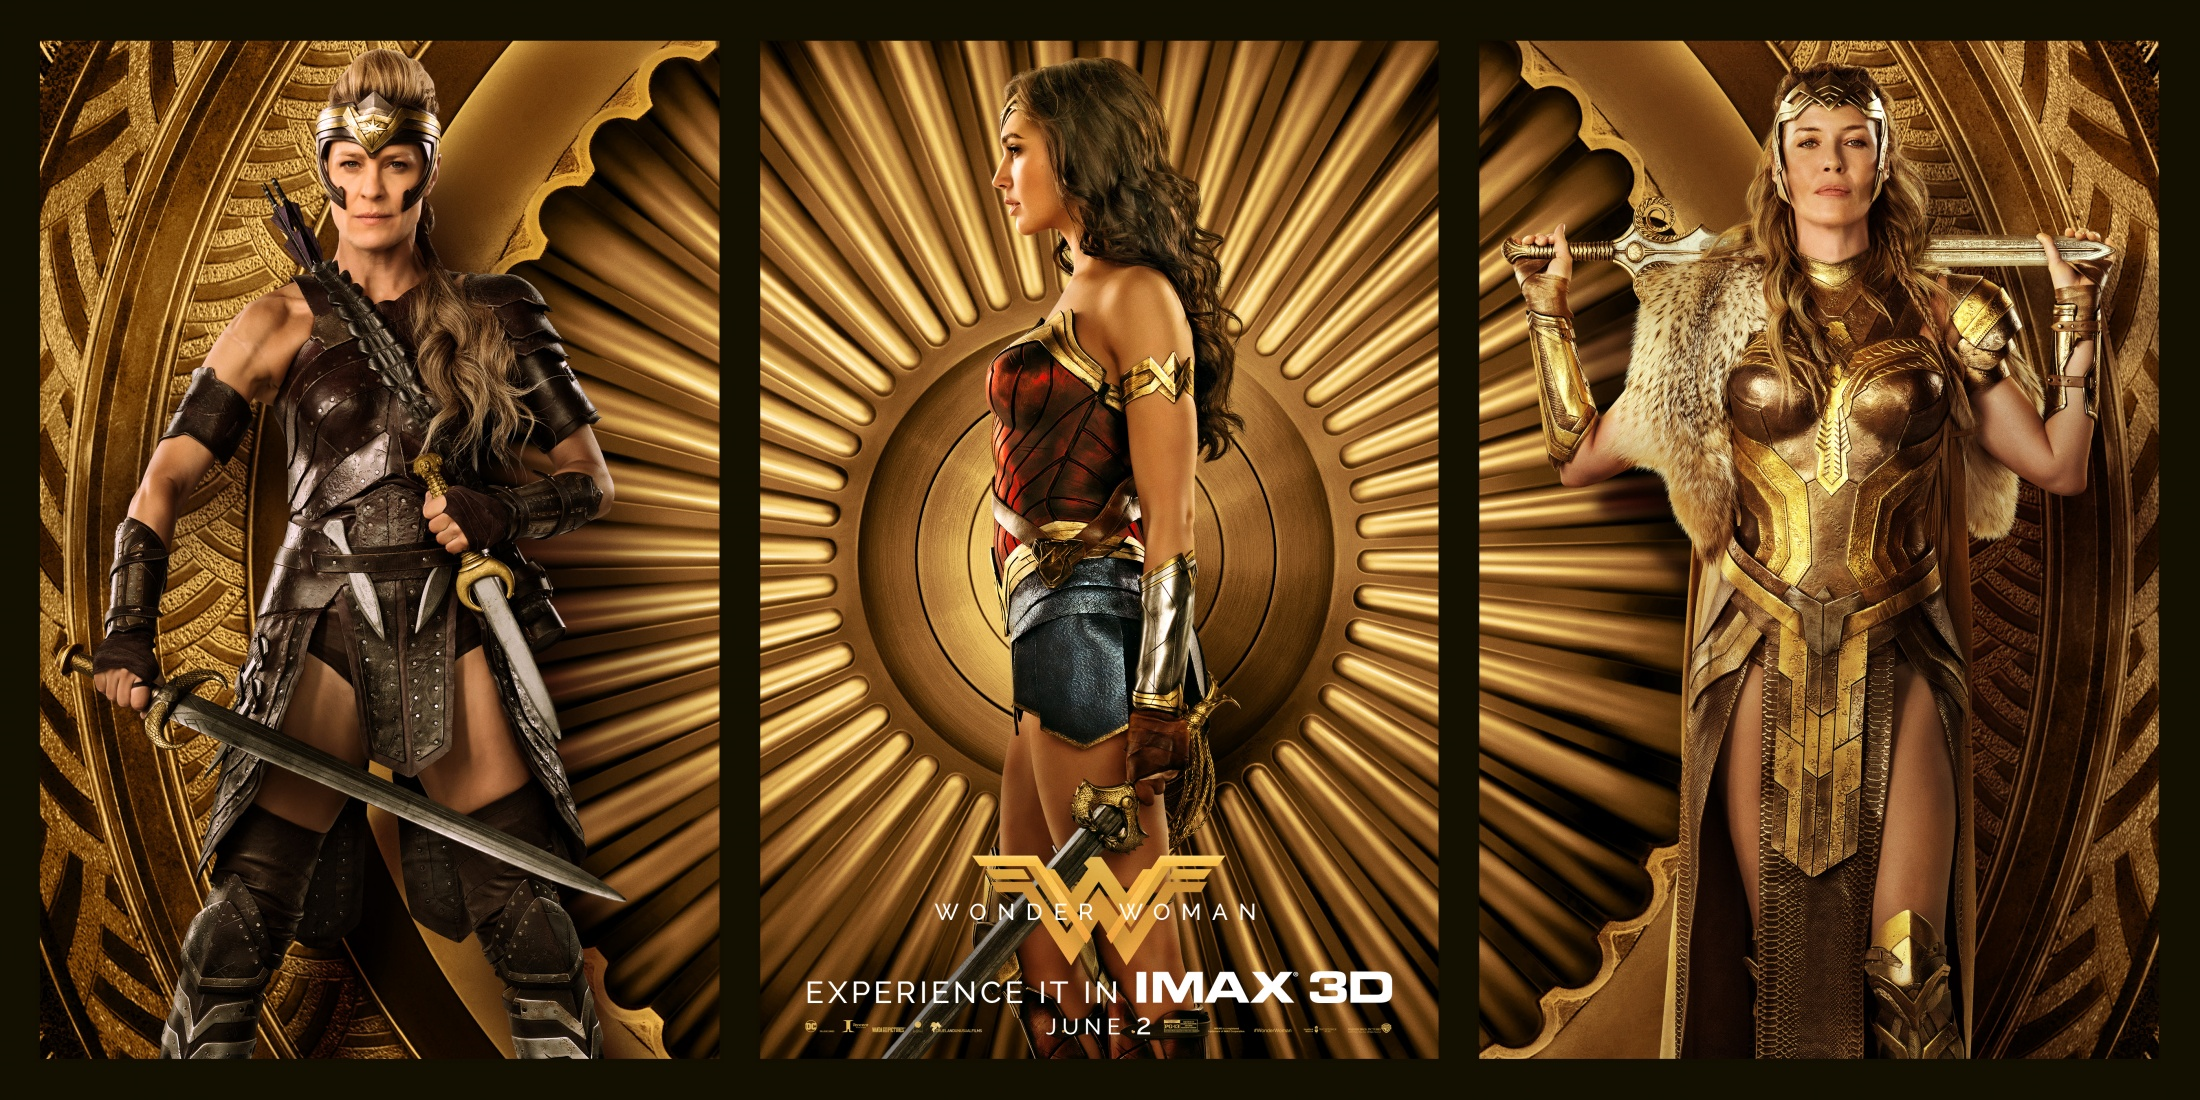 Thumbnail for Wonder Woman Triptych One-Sheet